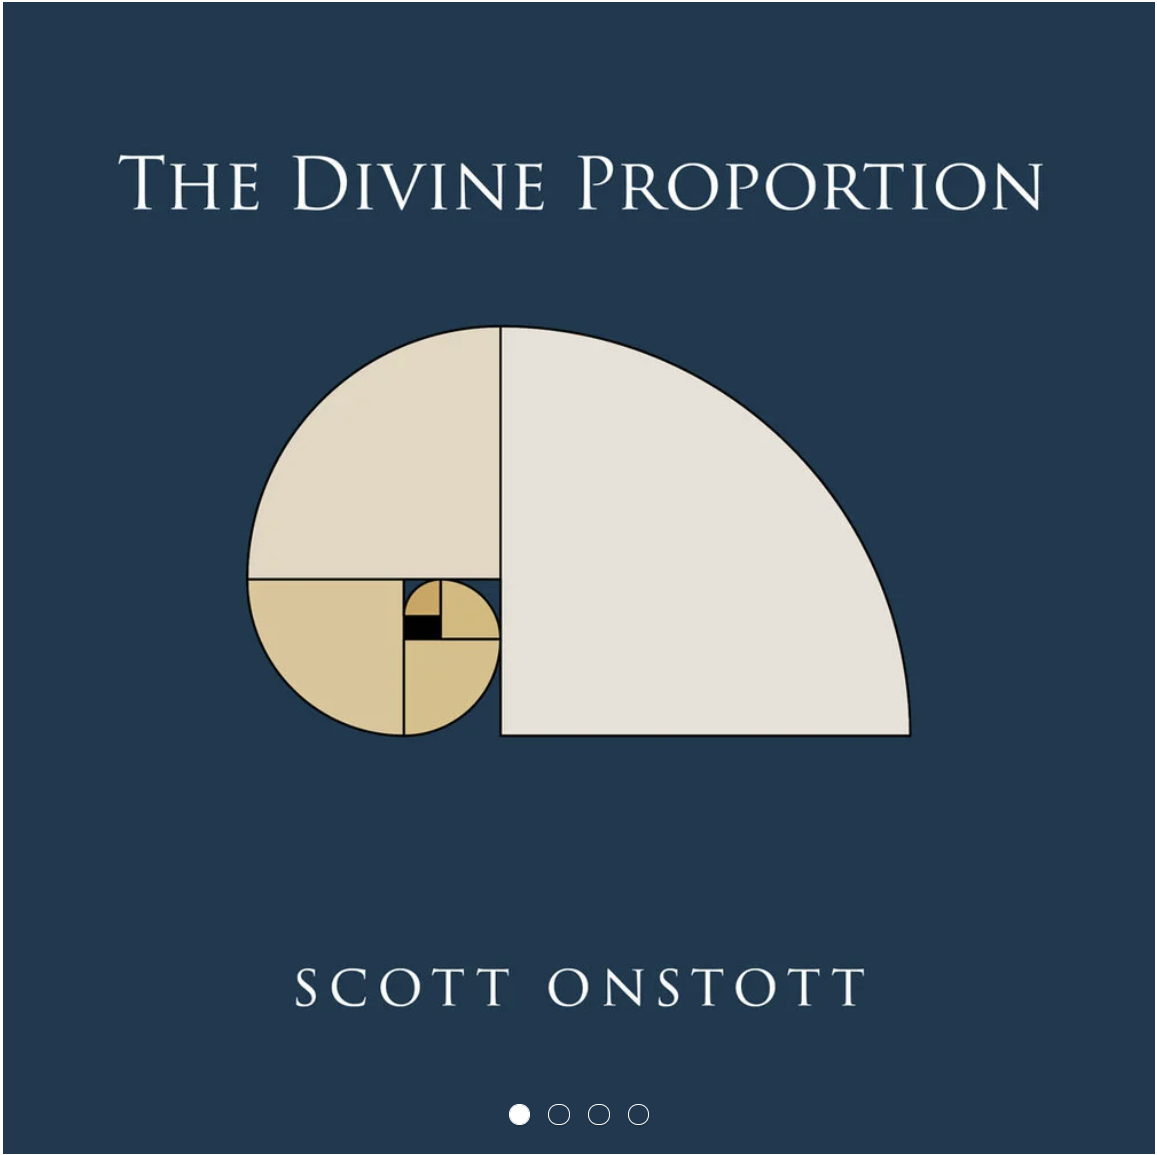 The Divine Proportion book cover